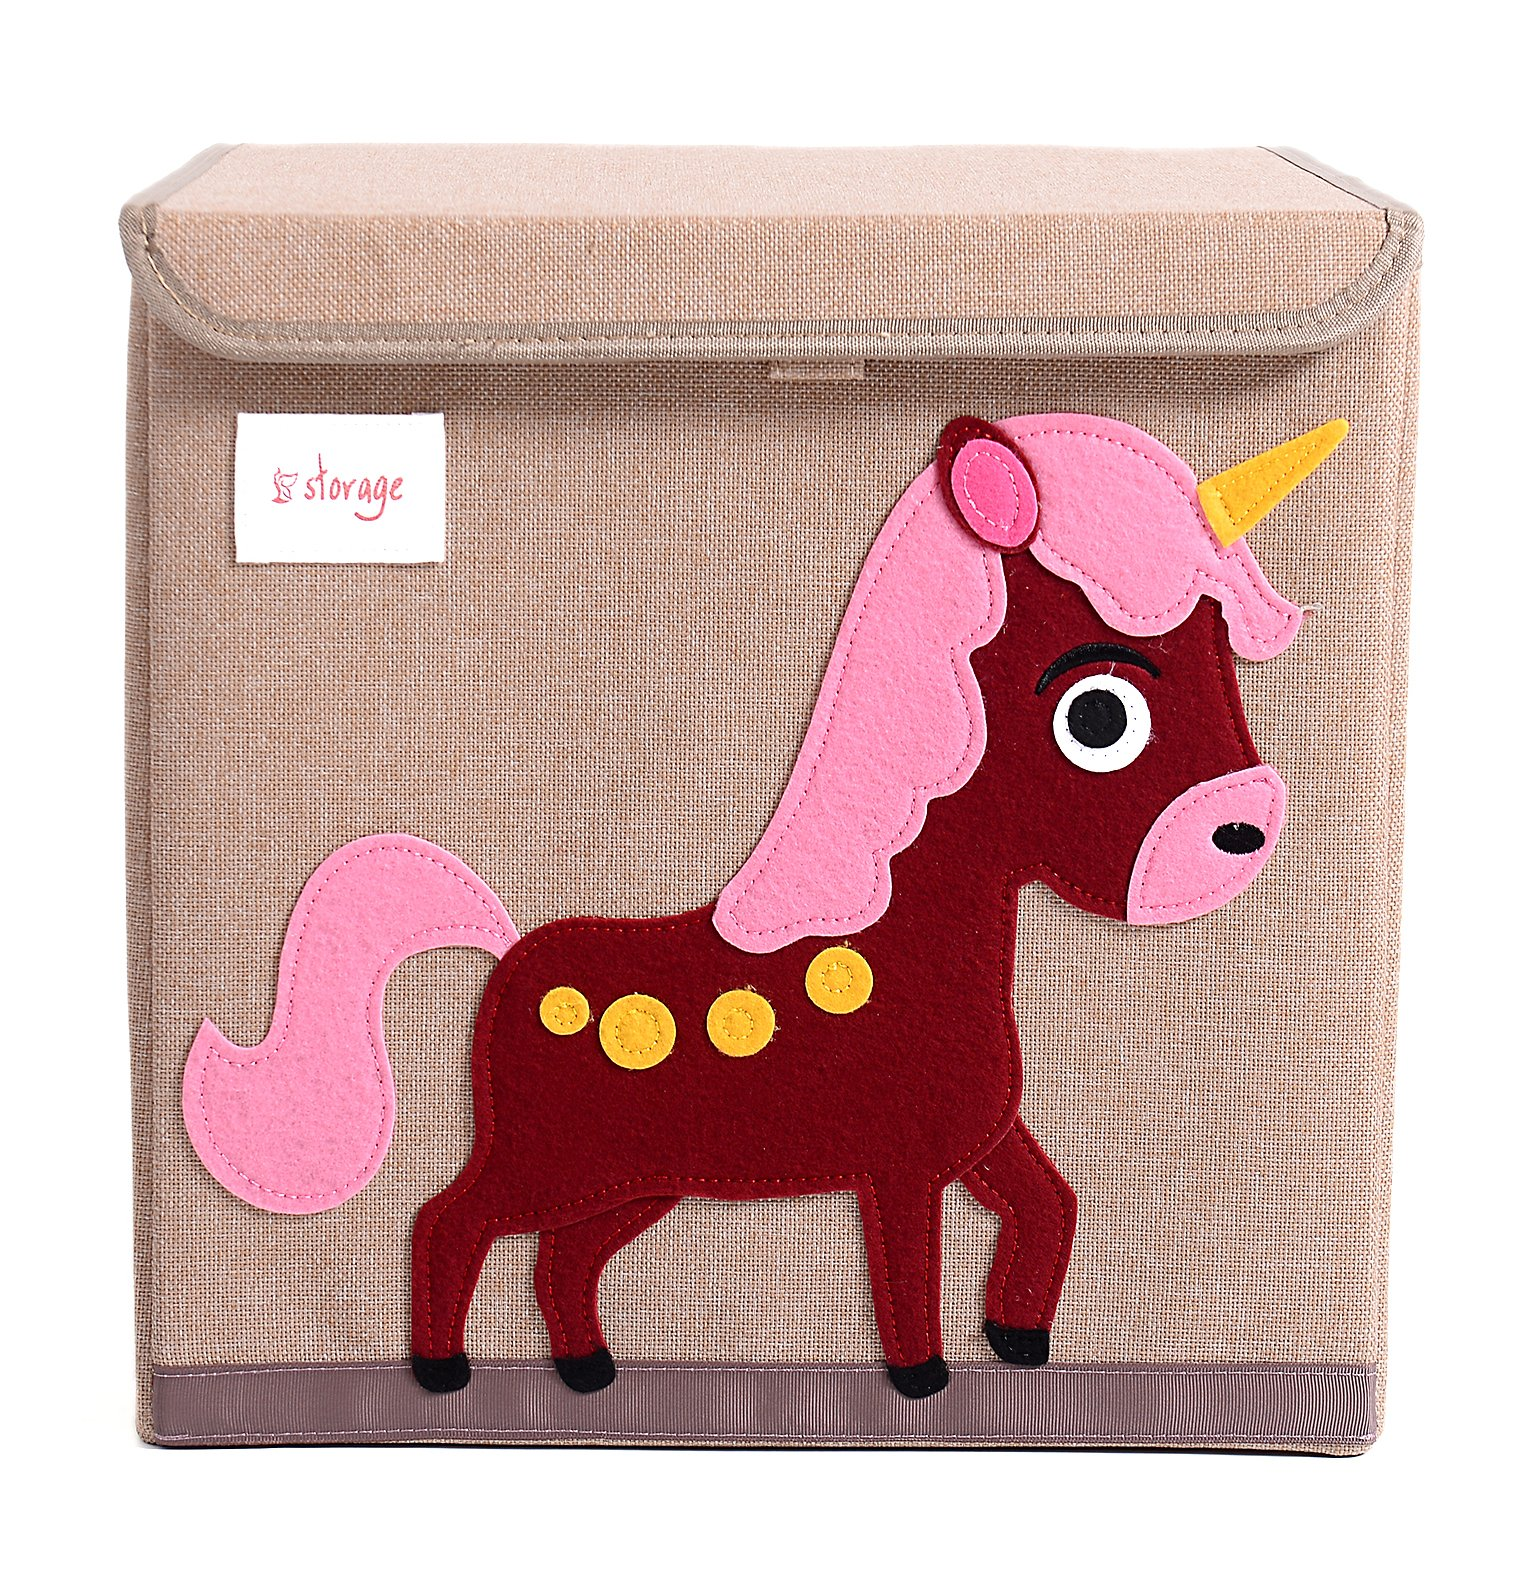 HIYAGON 13''x13''x13''Storage Box/Bin/Cube/Basket/Chest/Organizers with Lids for Bedroom, Nursery, Playroom, Toys, Clothing, Blankets, Books, More(Unicorn)